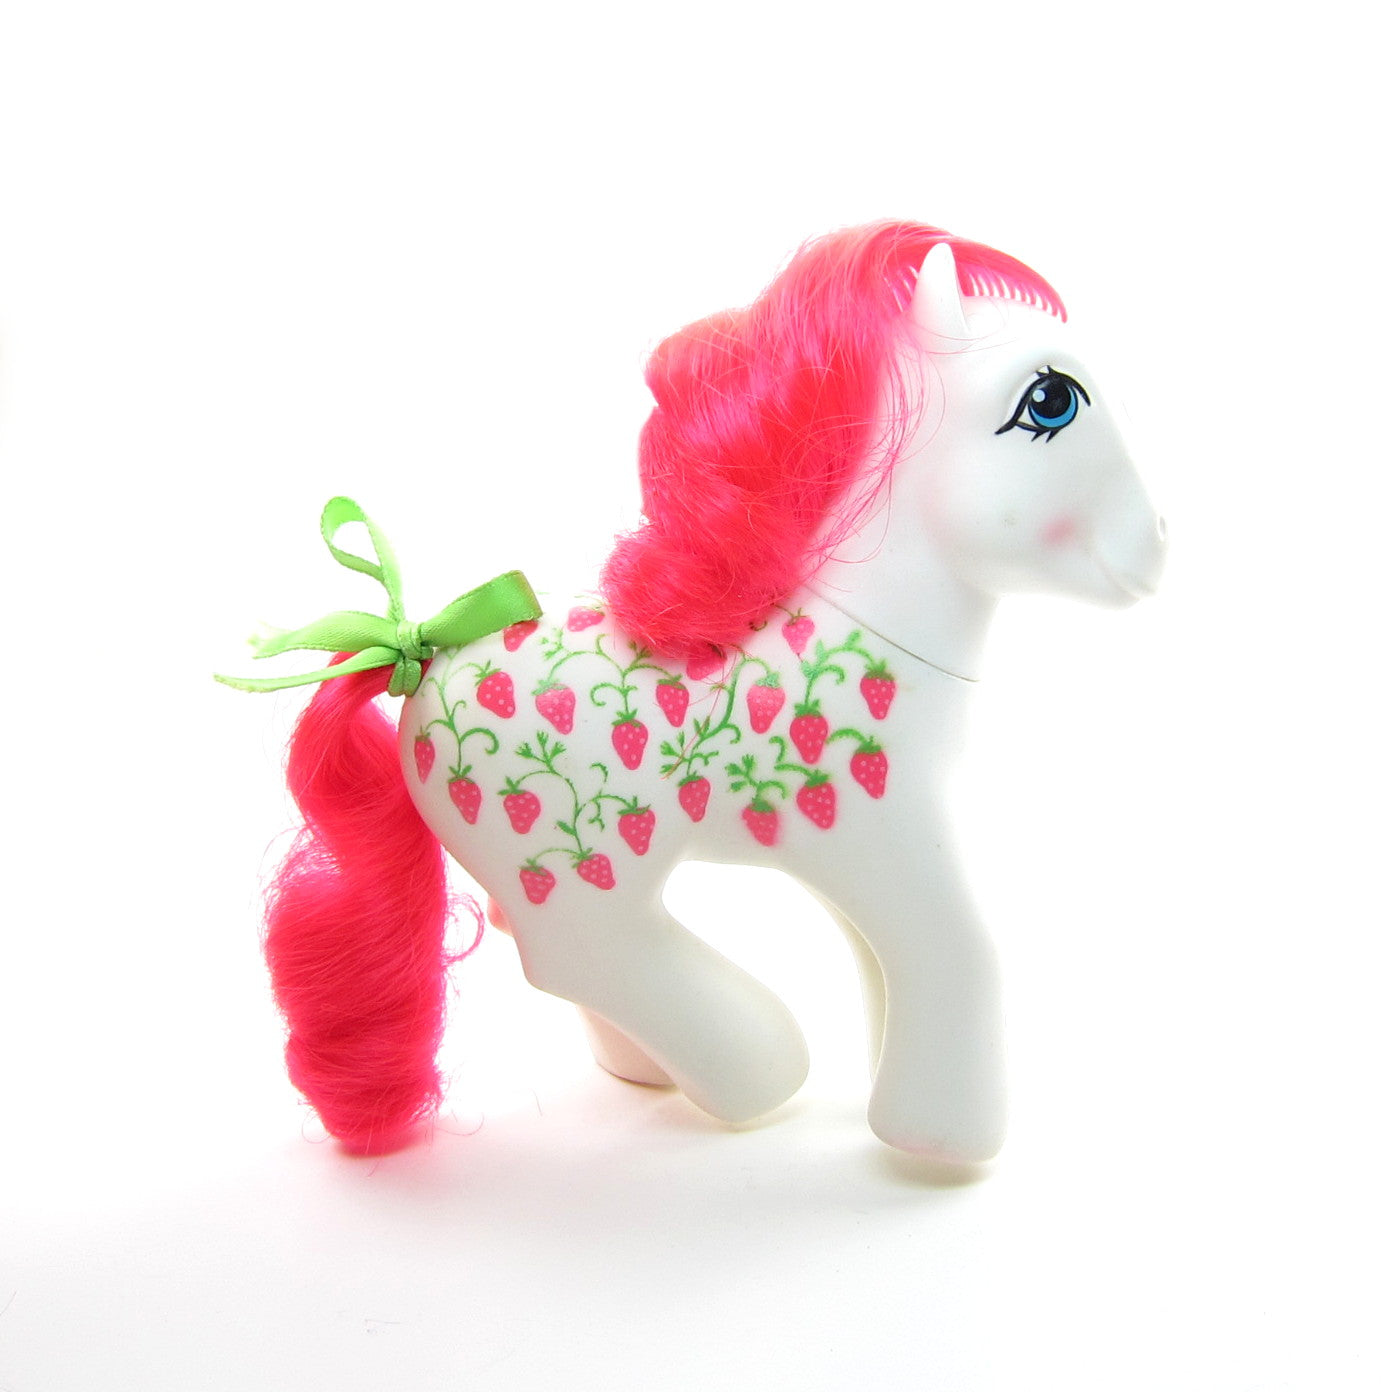 Twice as Fancy Sugarberry My Little Pony